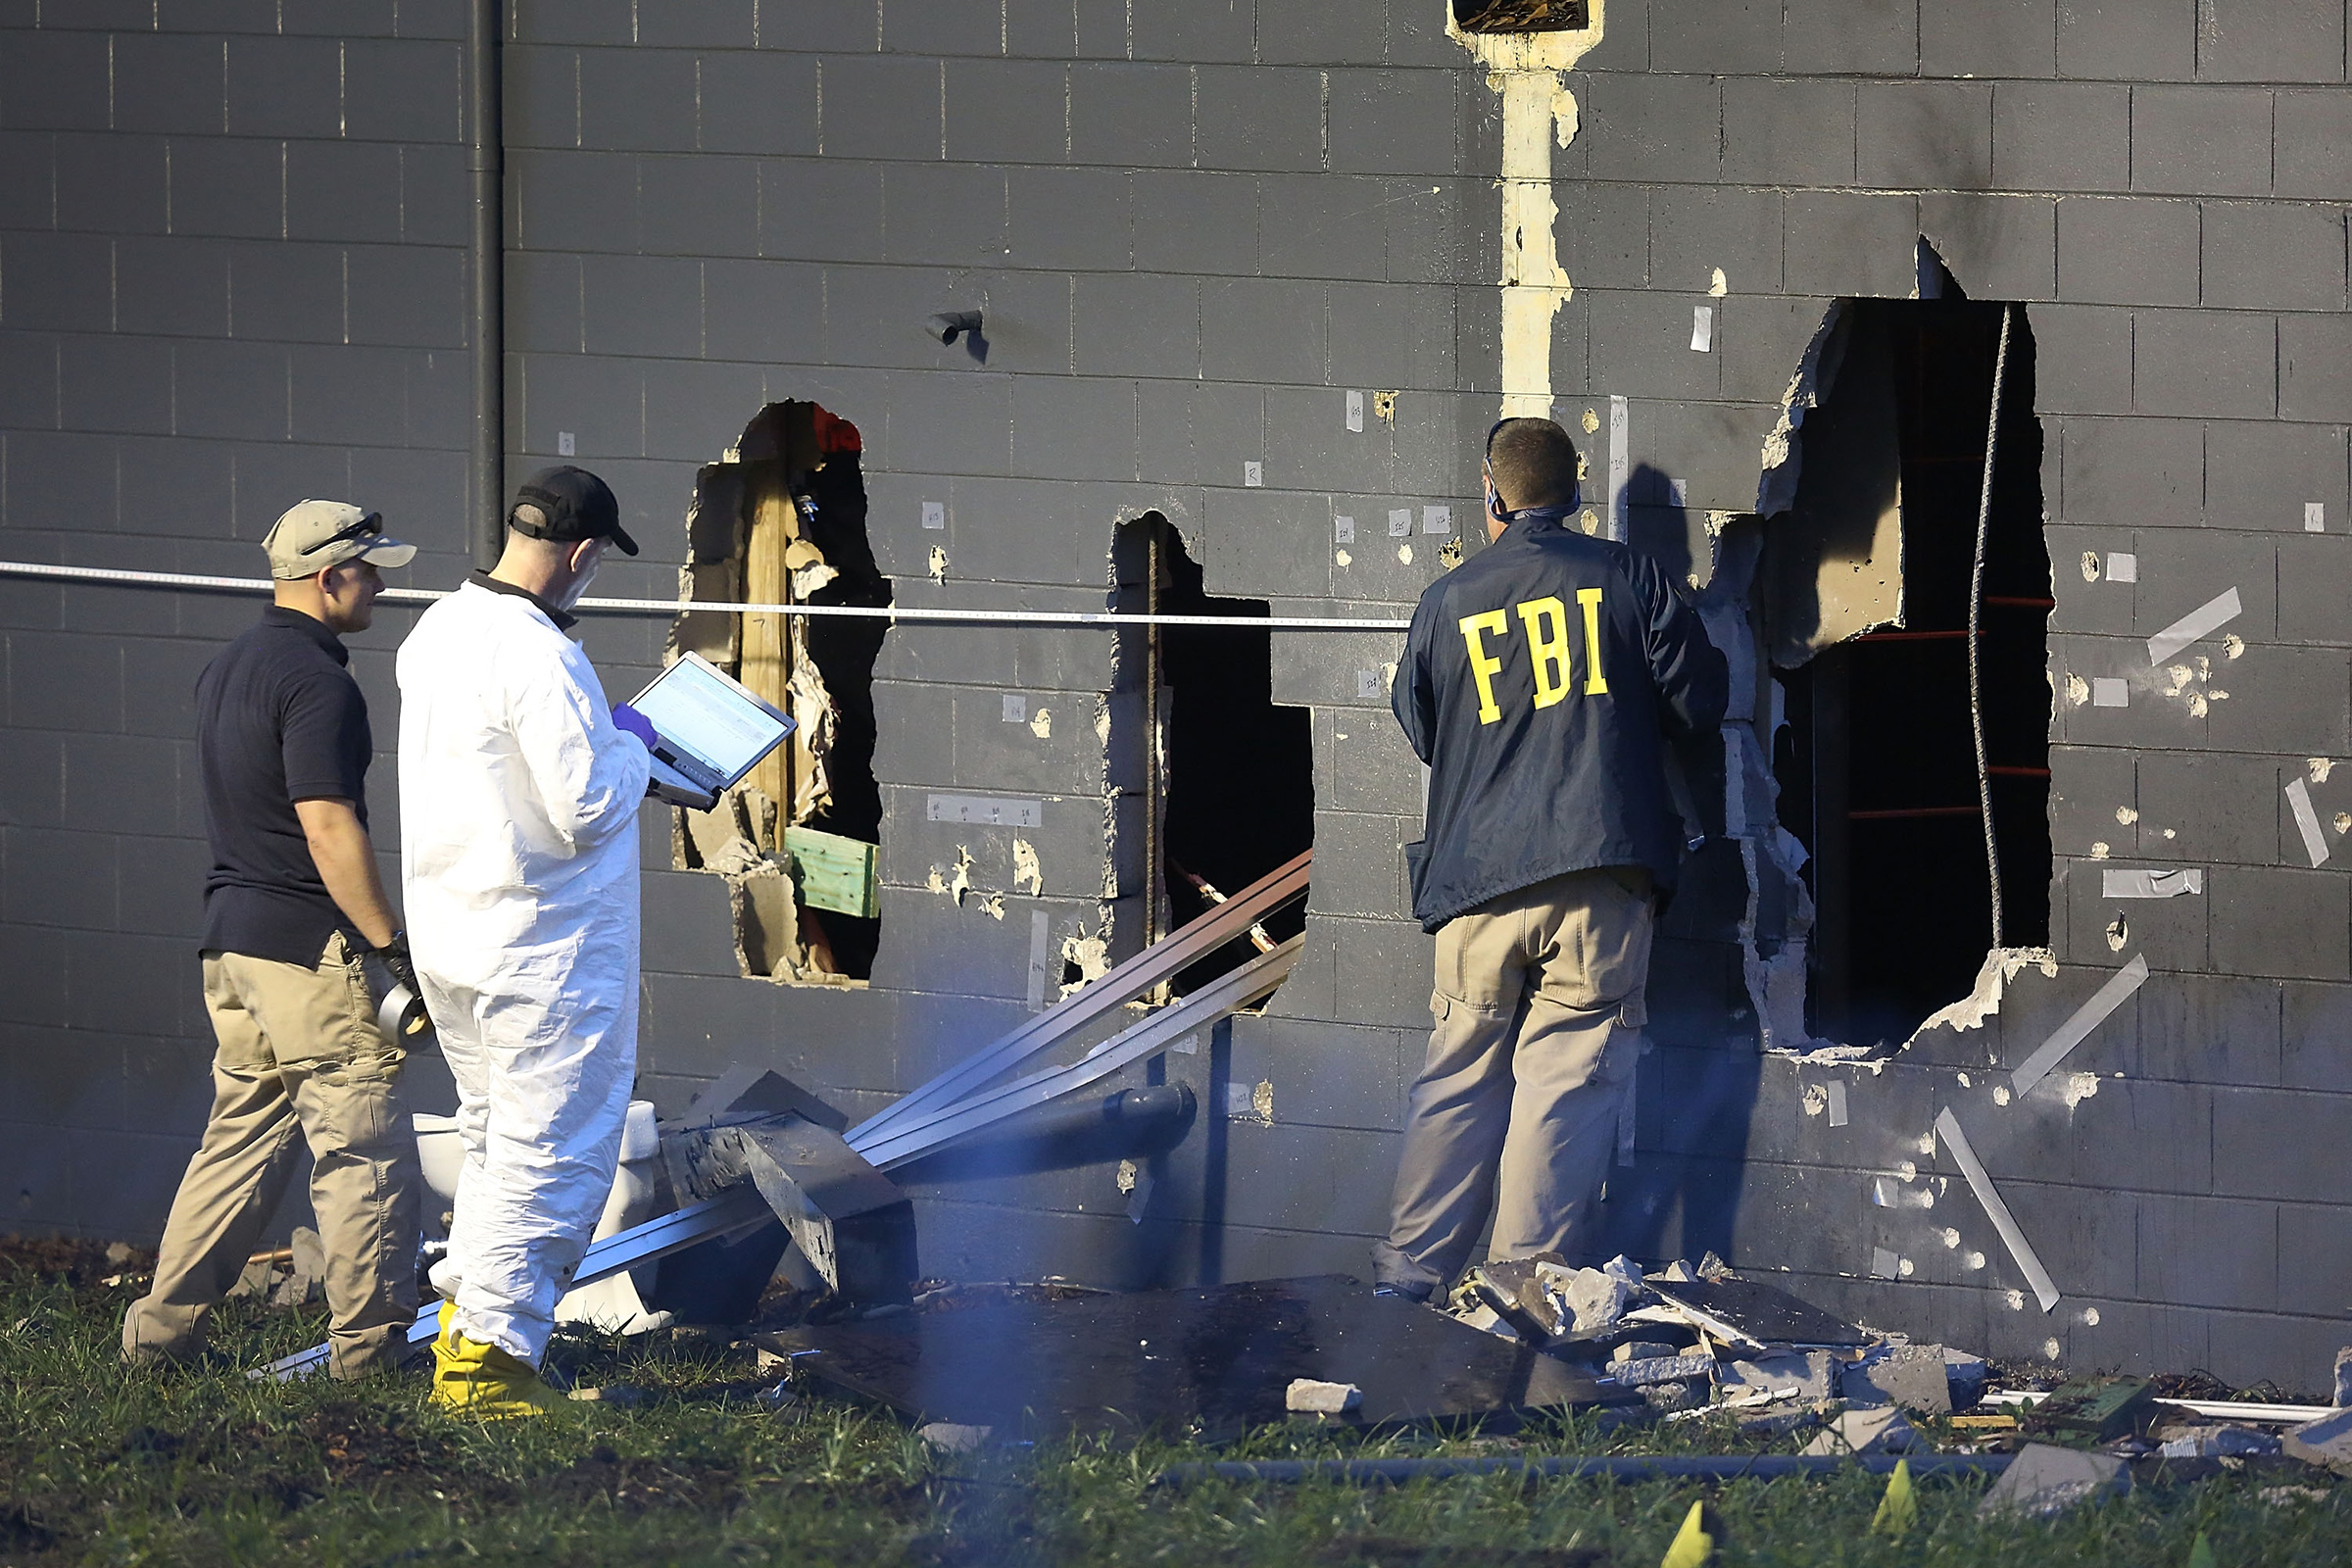 FBI agents investigate near the damaged rear wall of the Pulse Nightclub where Omar Mateen allegedly killed at least 50 people on June 12, 2016 in Orlando.